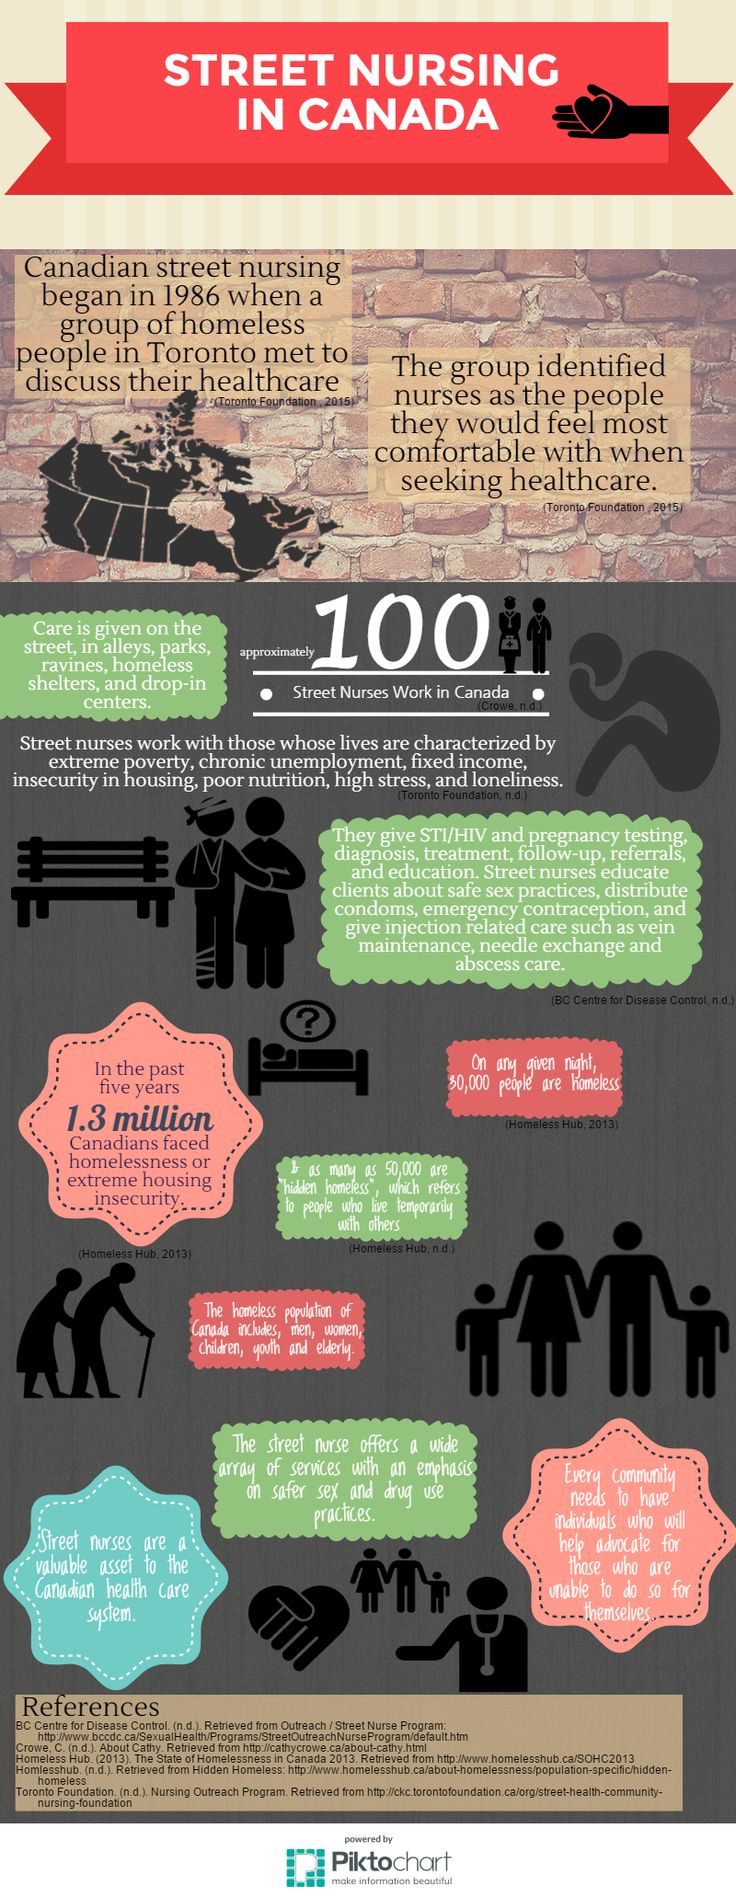 Street nurses work with those whose lives are characterized by extreme poverty. They provide these individuals with care in drop-in centers, homeless shelters, alleyways and streets. - See more at: http://www.homelesshub.ca/blog/infographic-street-nursing-canada#sthash.y8PGZmJ3.dpuf